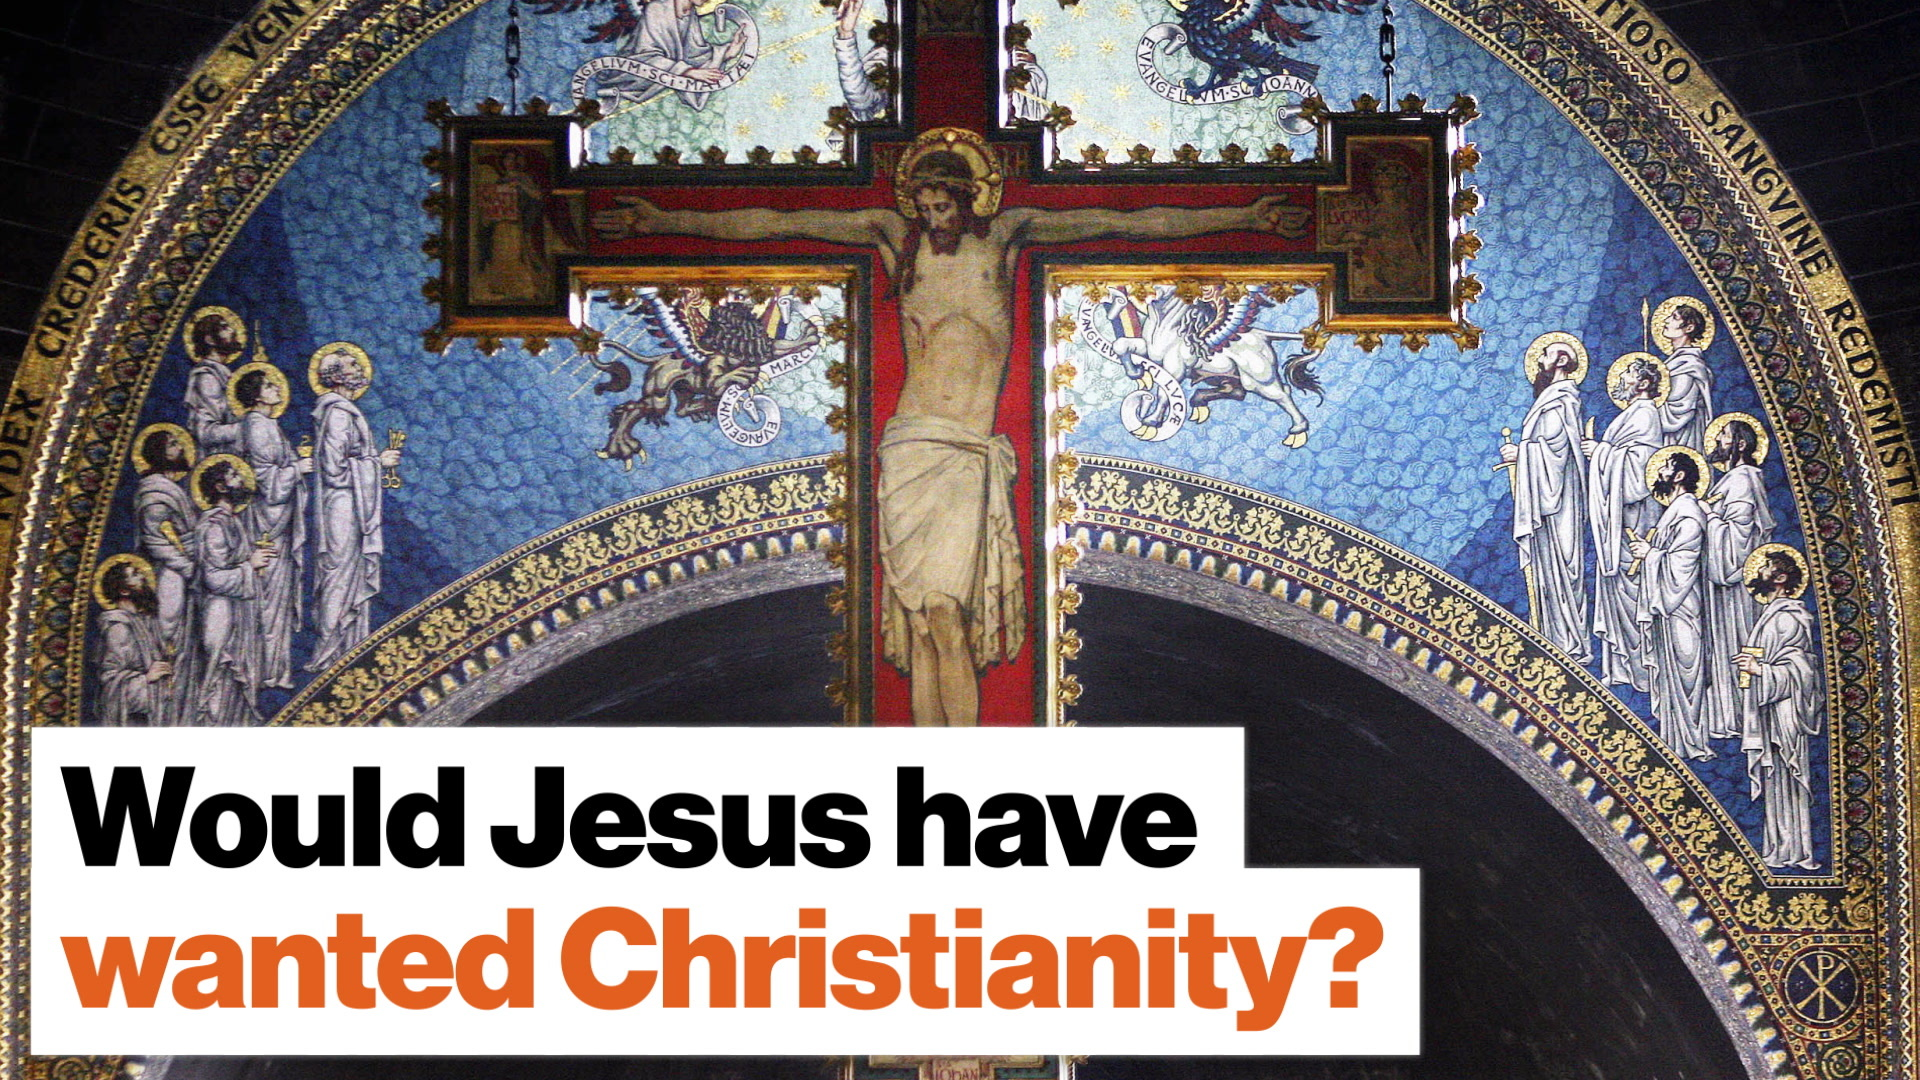 Would Jesus have wanted Christianity?